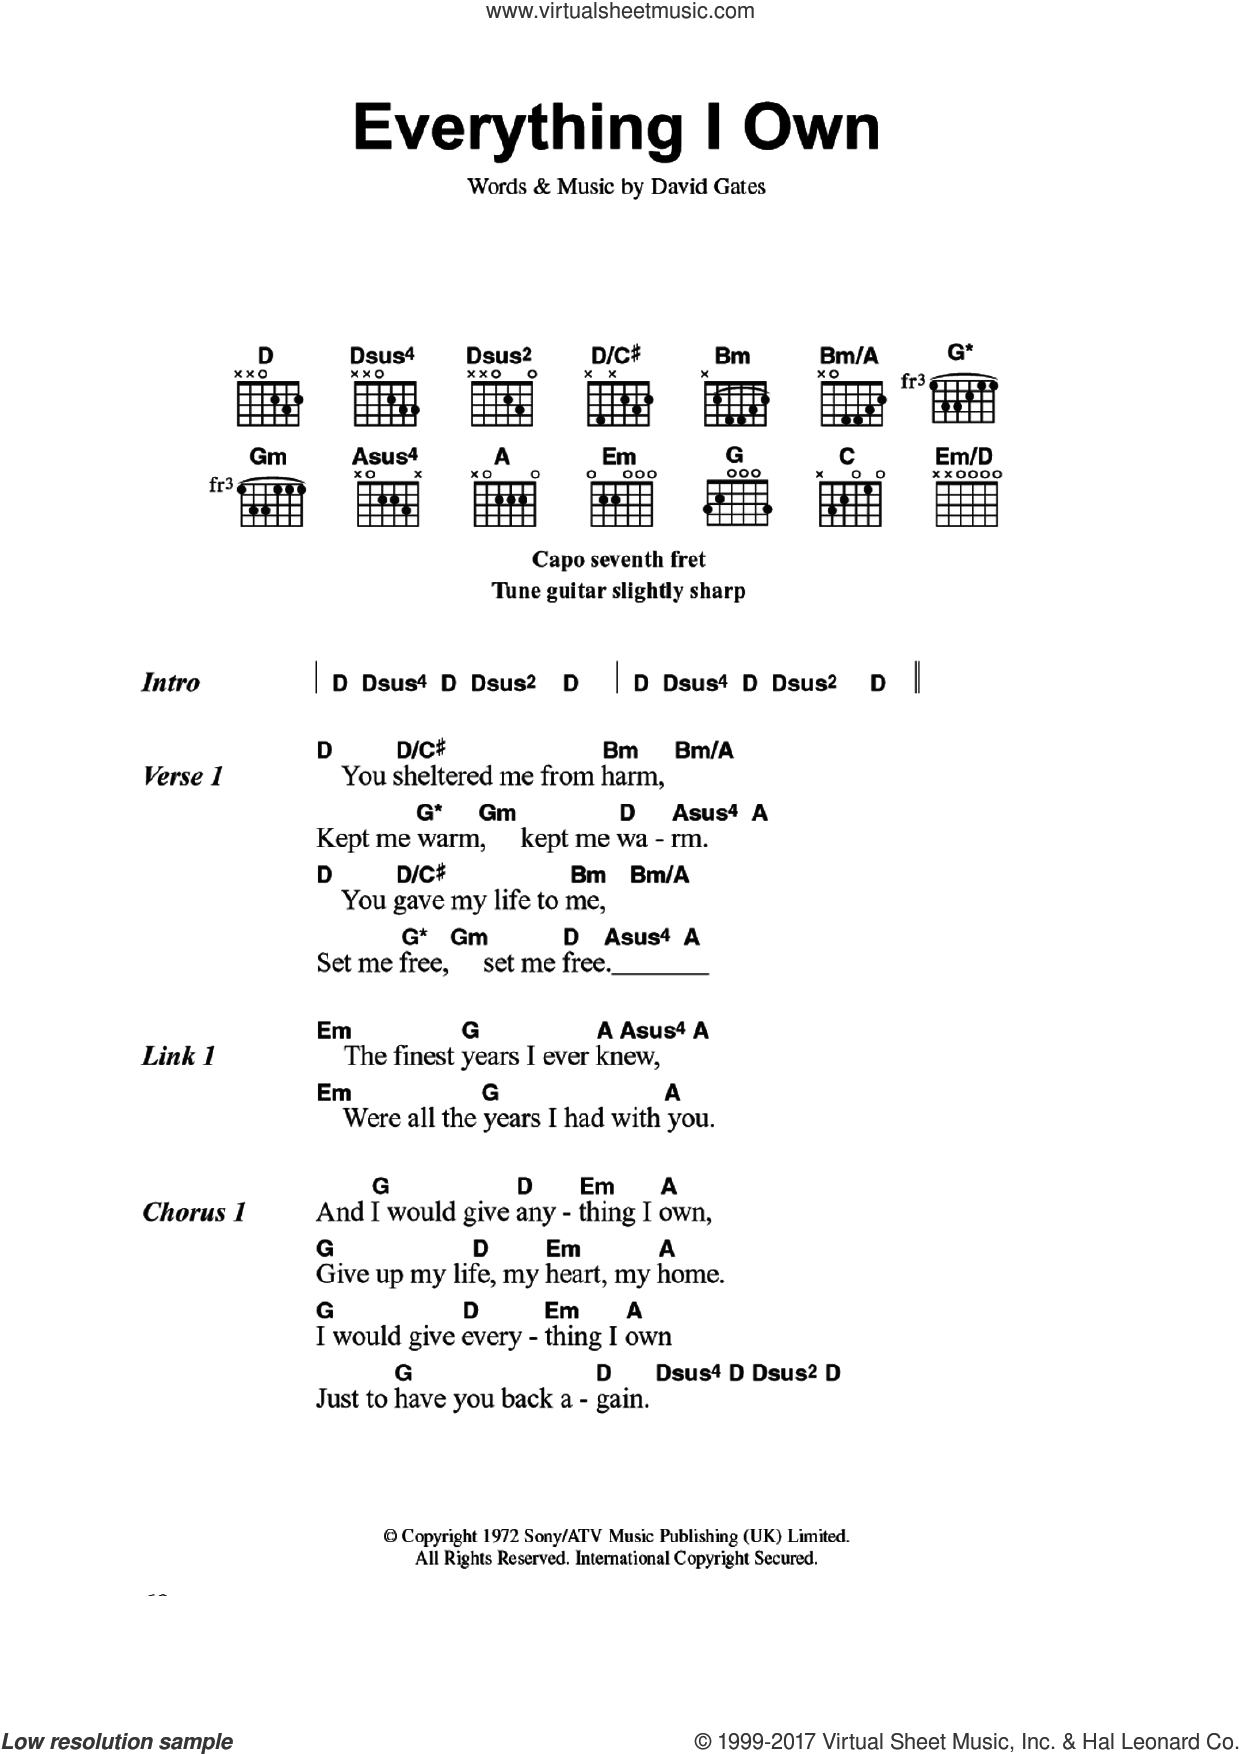 Everything I Own sheet music for guitar (chords) by Bread and David Gates, intermediate skill level